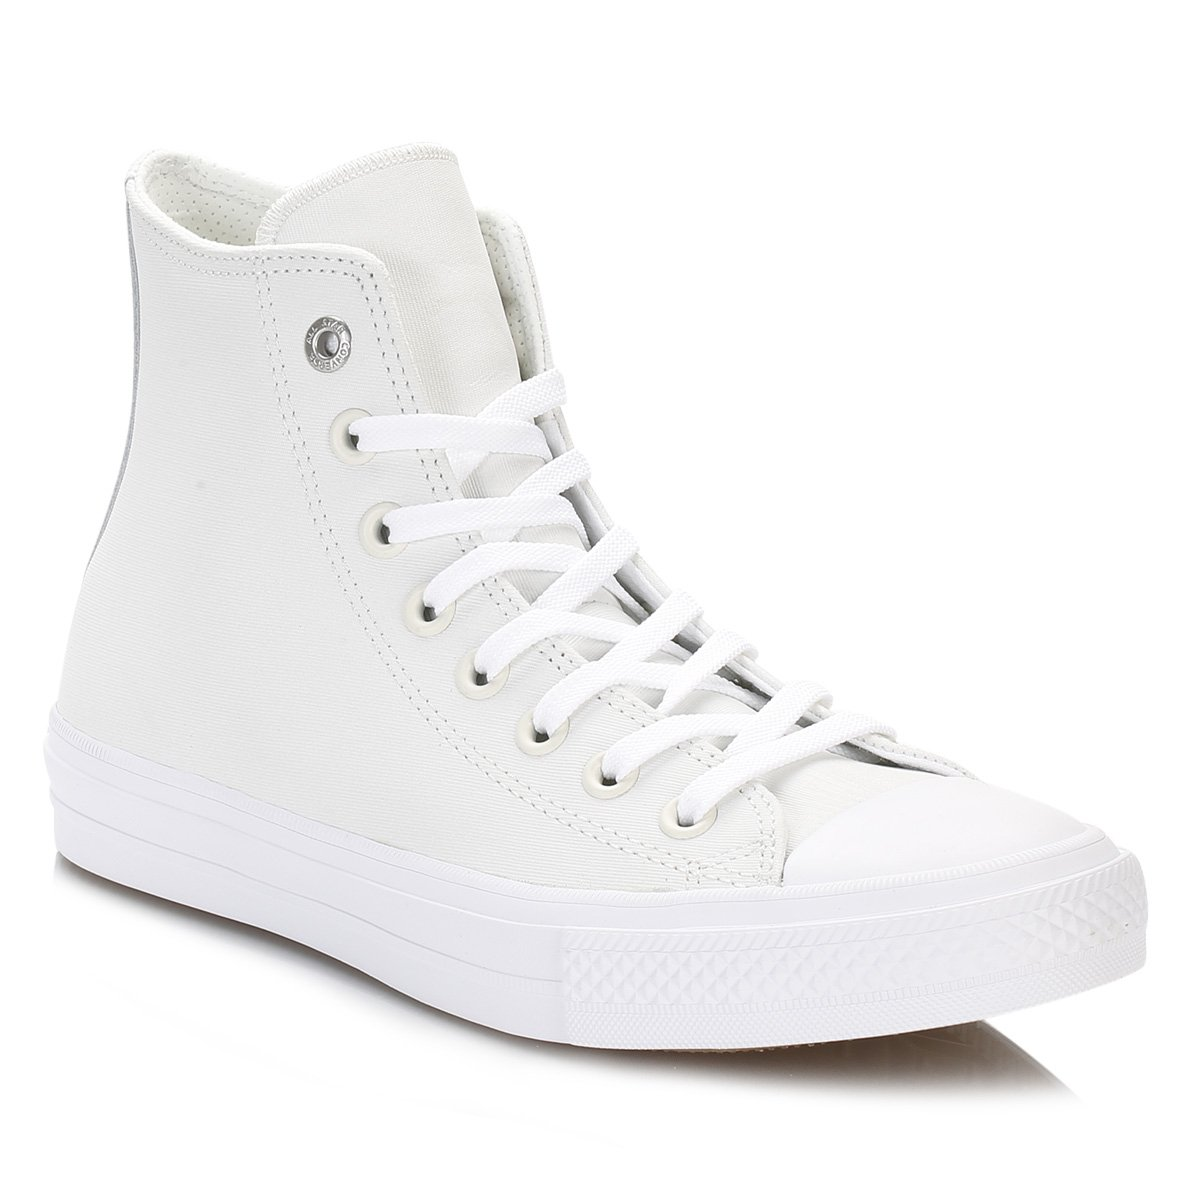 Converse Chuck Taylor All Star II Two-Tone High Sneaker Sneaker Sneaker Damen - 1736f0